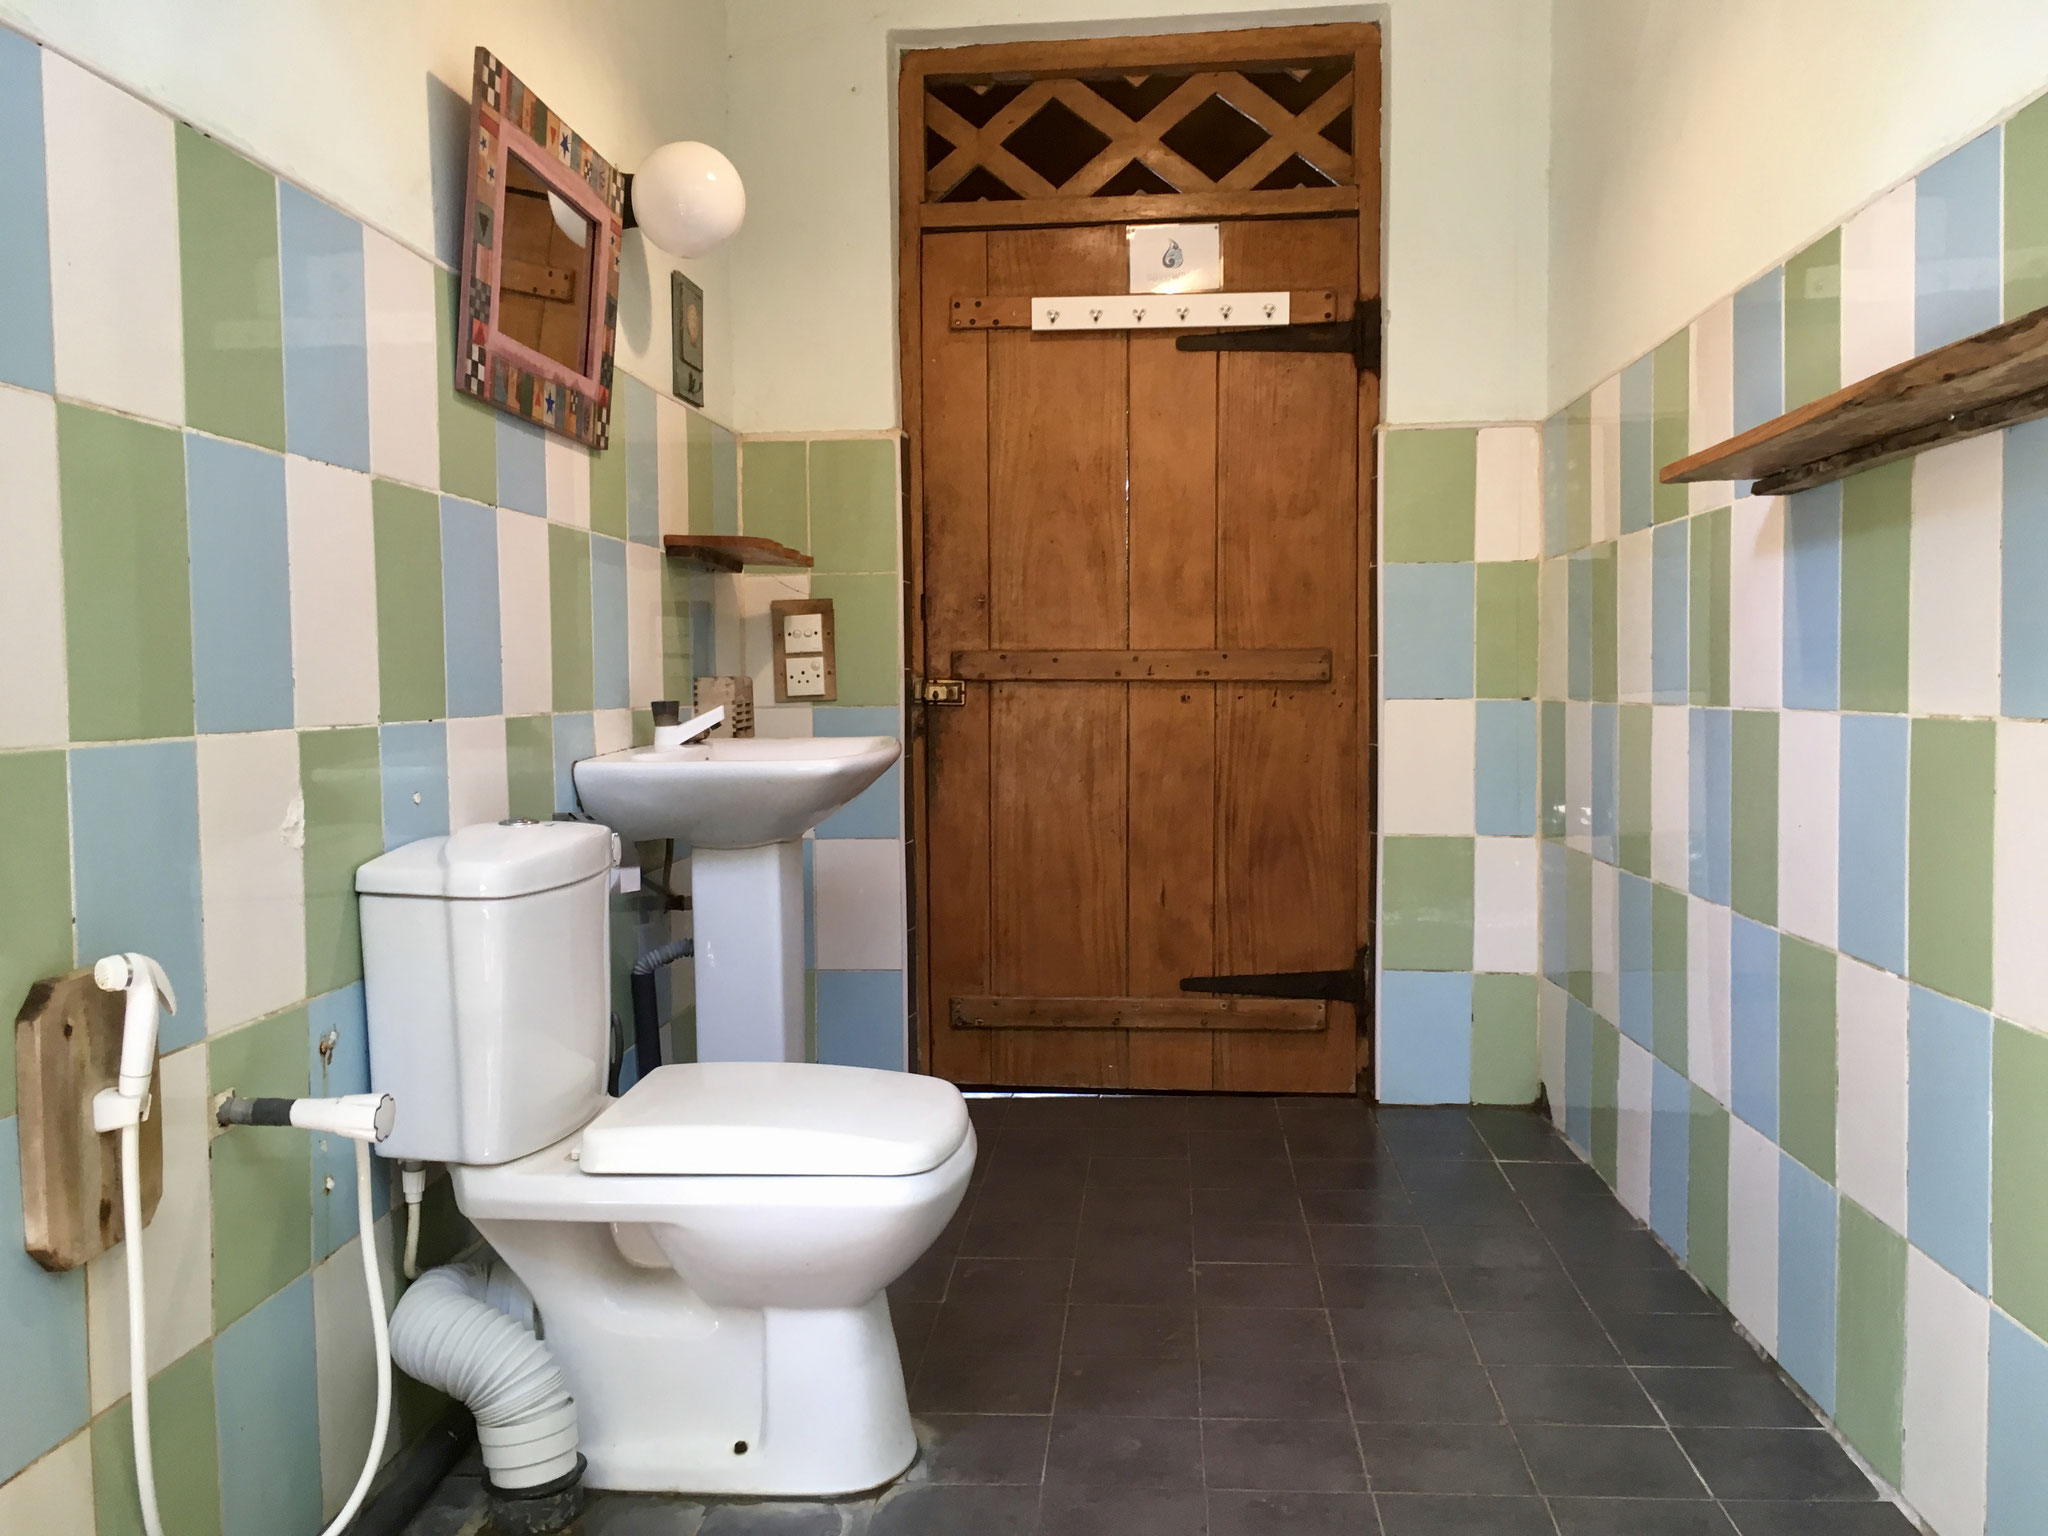 Room 1/ Shared Bathroom